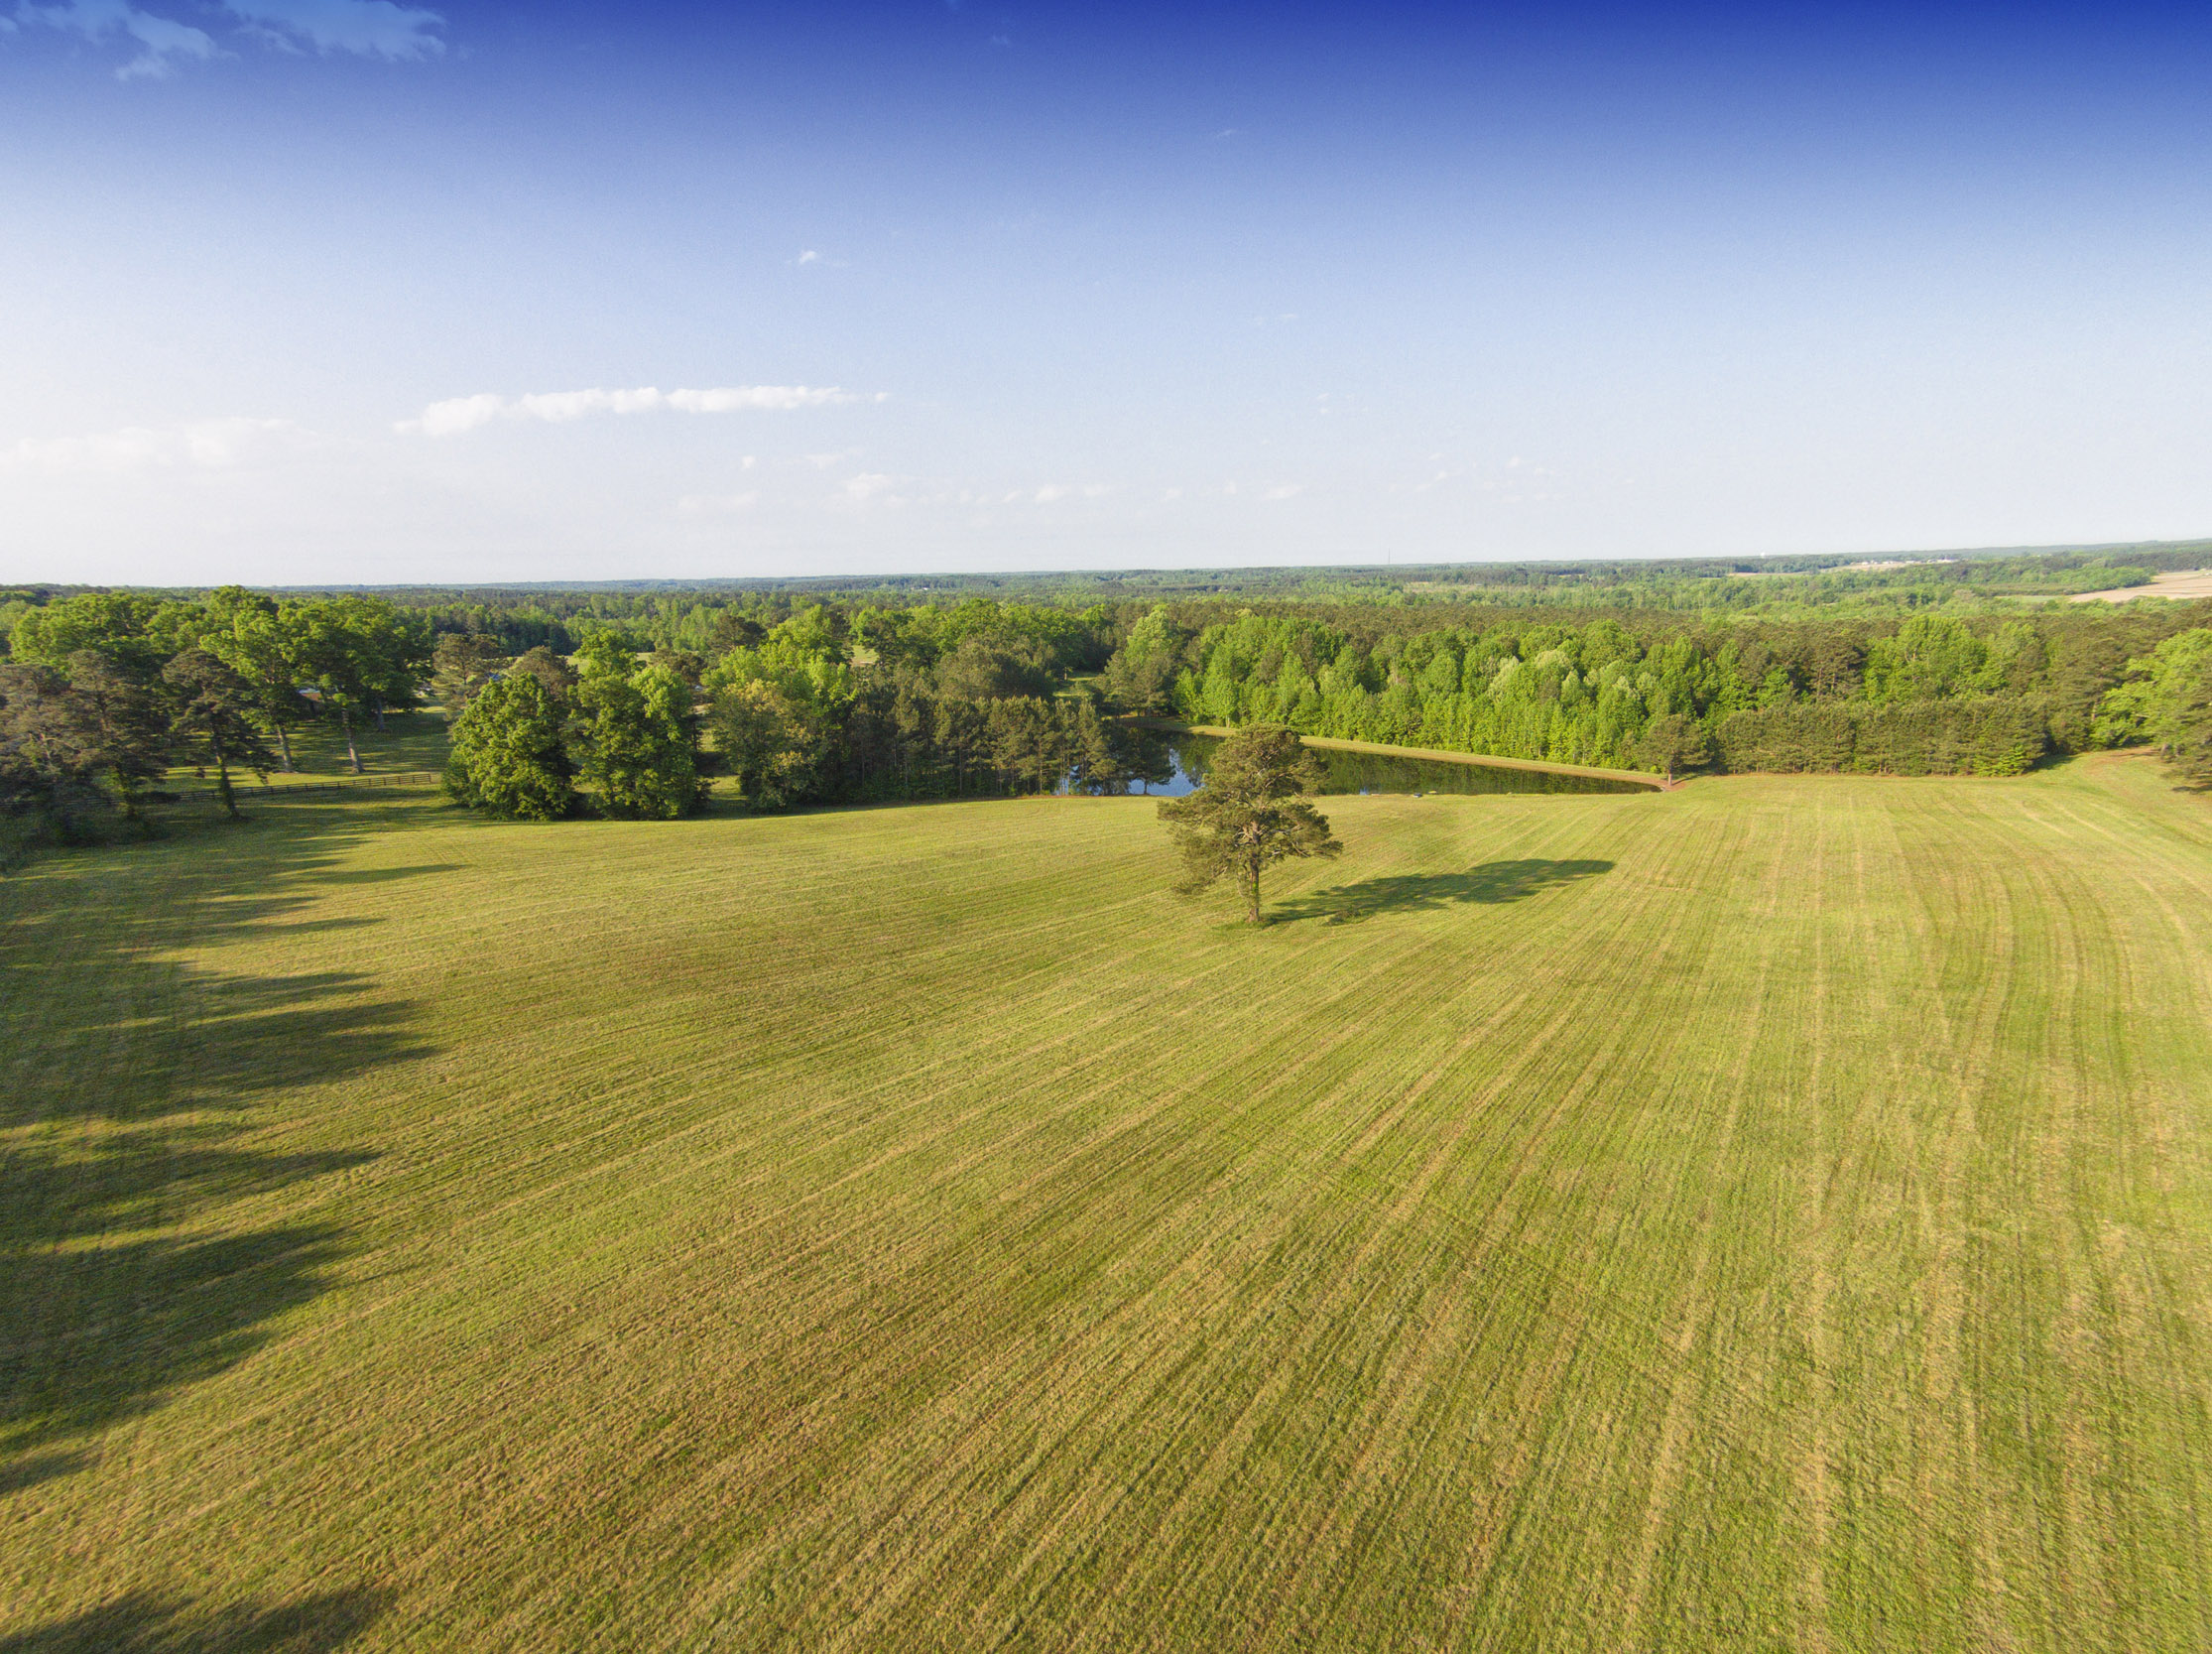 215 Acres for Sale in Louisburg Franklin COunty NC